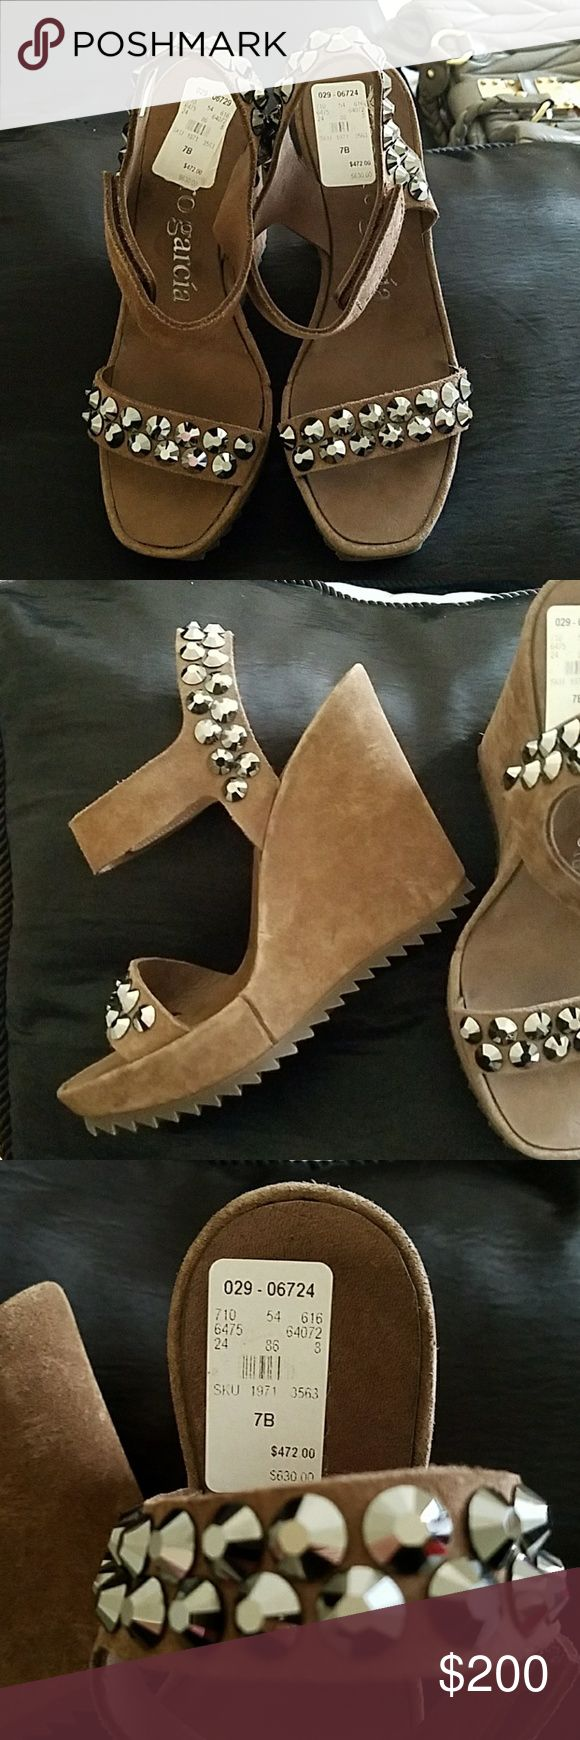 Pedro Garcia Brown wedges Pedro Garcia Brown Leather wedges with Swarovski Crystals size 7. I absolutely love this pair of shoes 😍 never worn Pedro Garcia Shoes Wedges